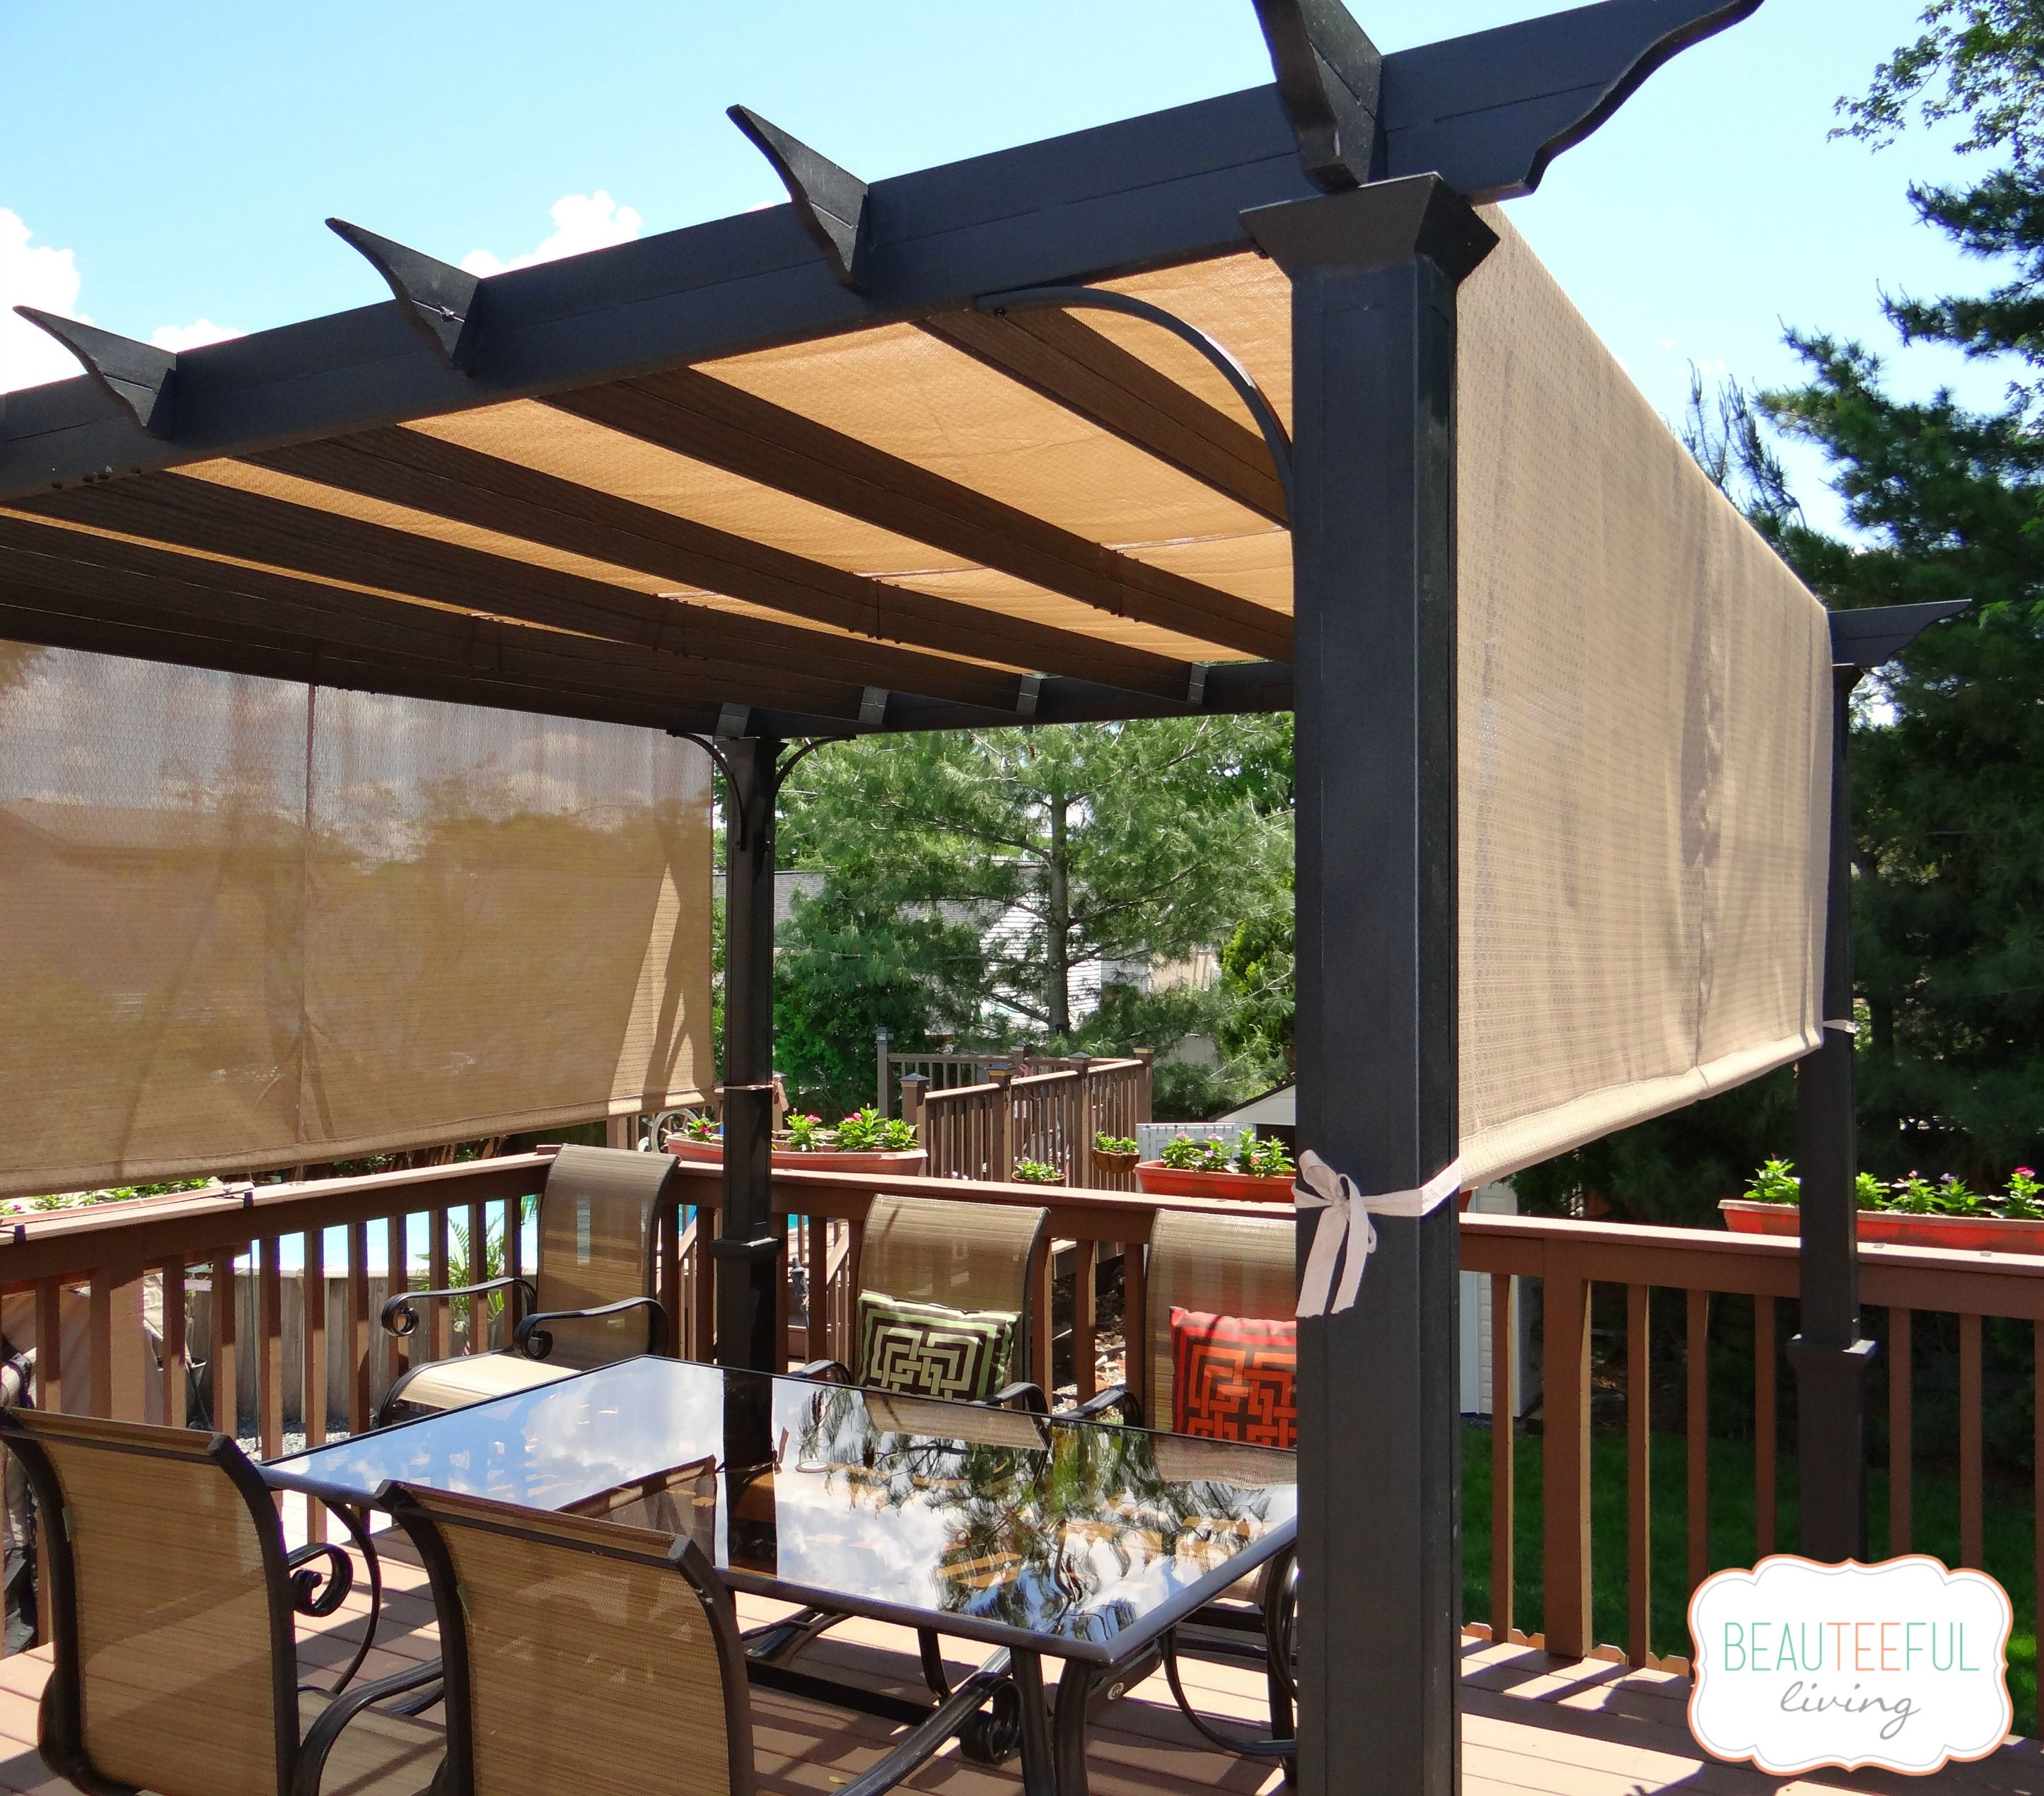 our new pergola shade at last